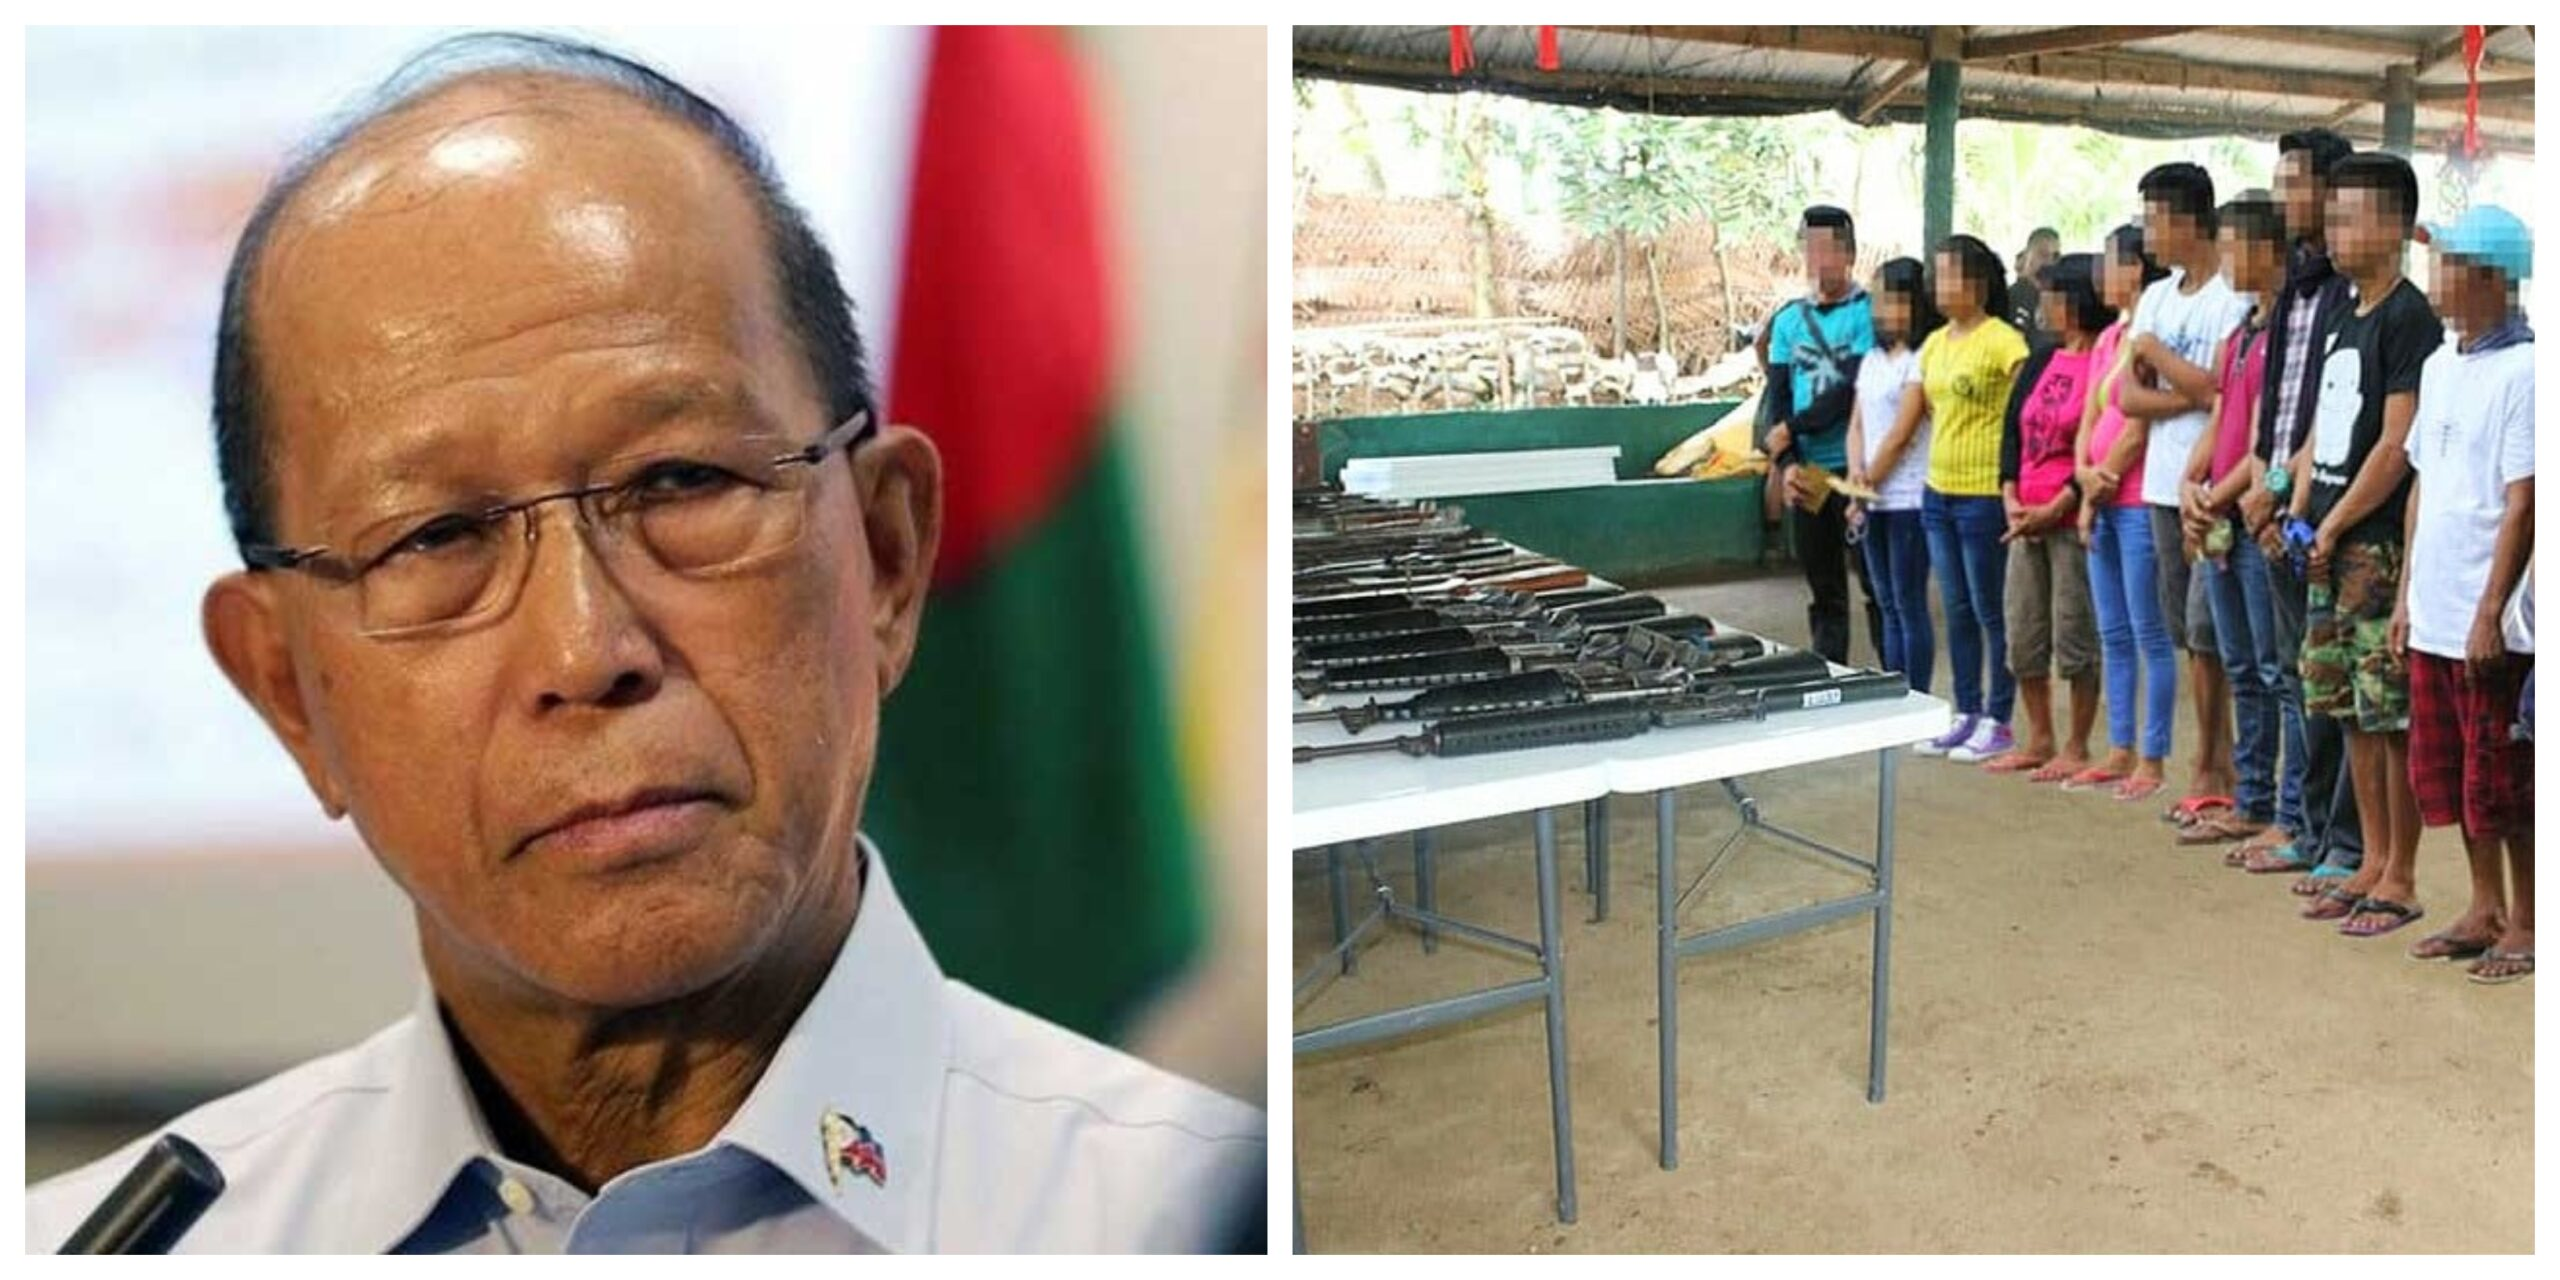 Defense Secretary Delfin Lorenzana and fake NPA surrenderees